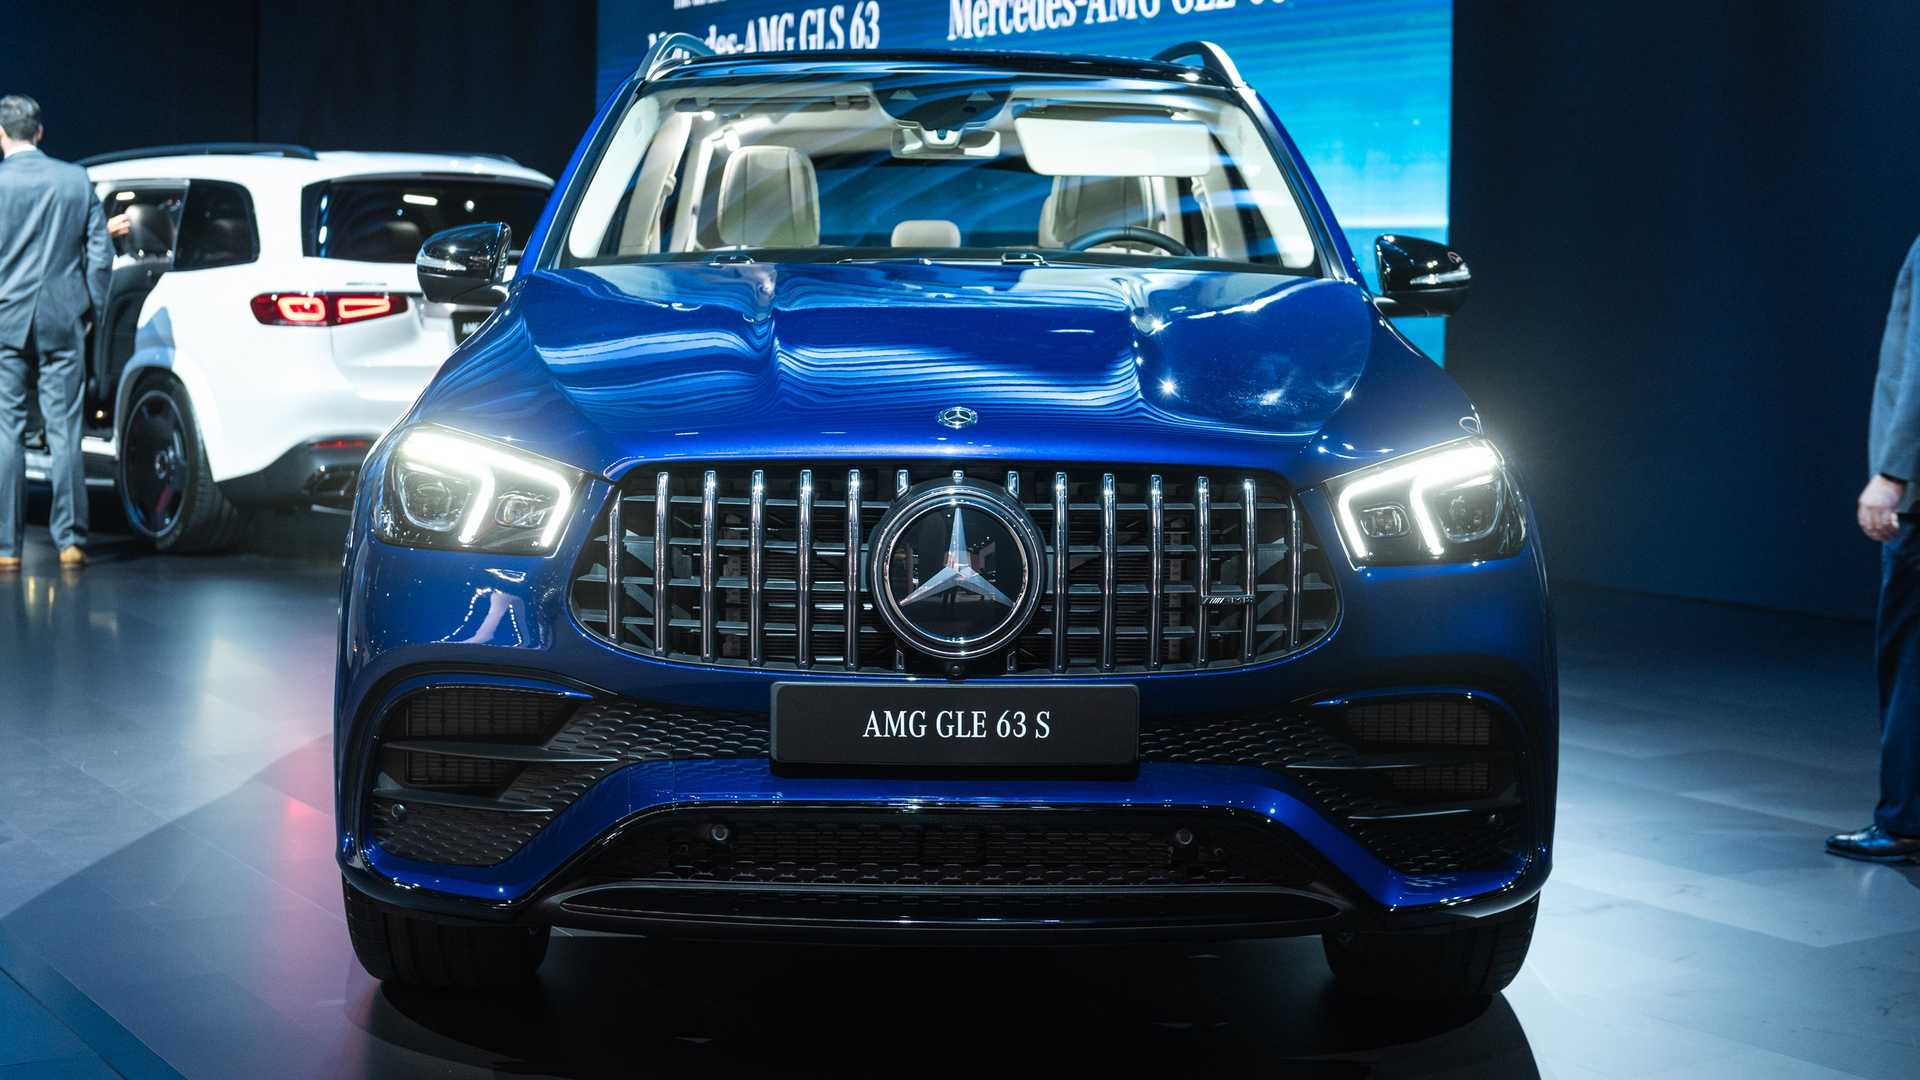 2021 Mercedes Amg Gle 63 S And Gls 63 Power Into L A With 603 Hp